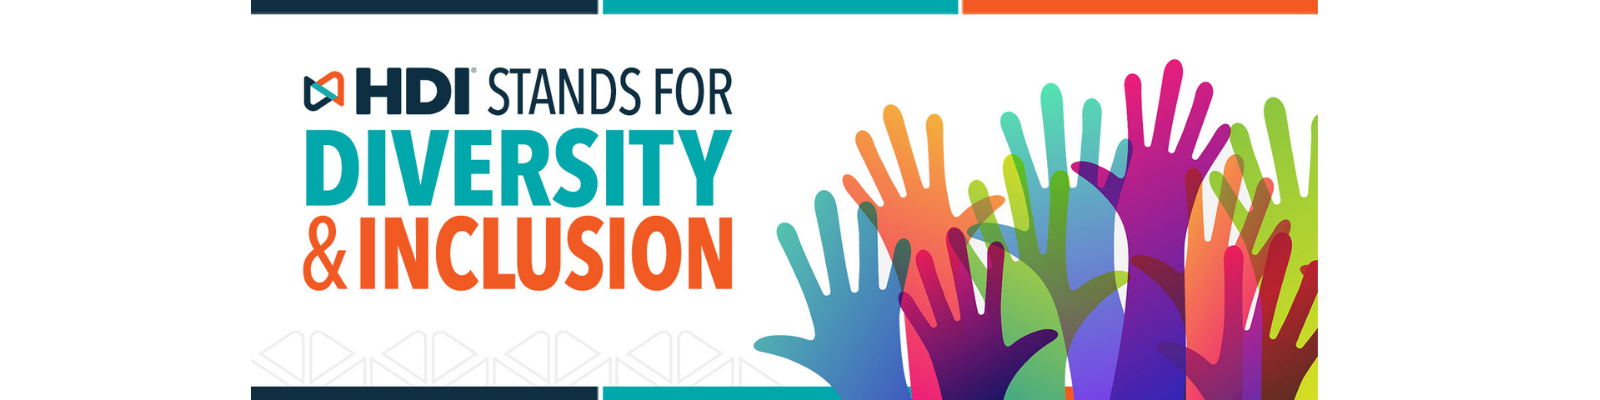 HDI Diversity and Inclusion Message